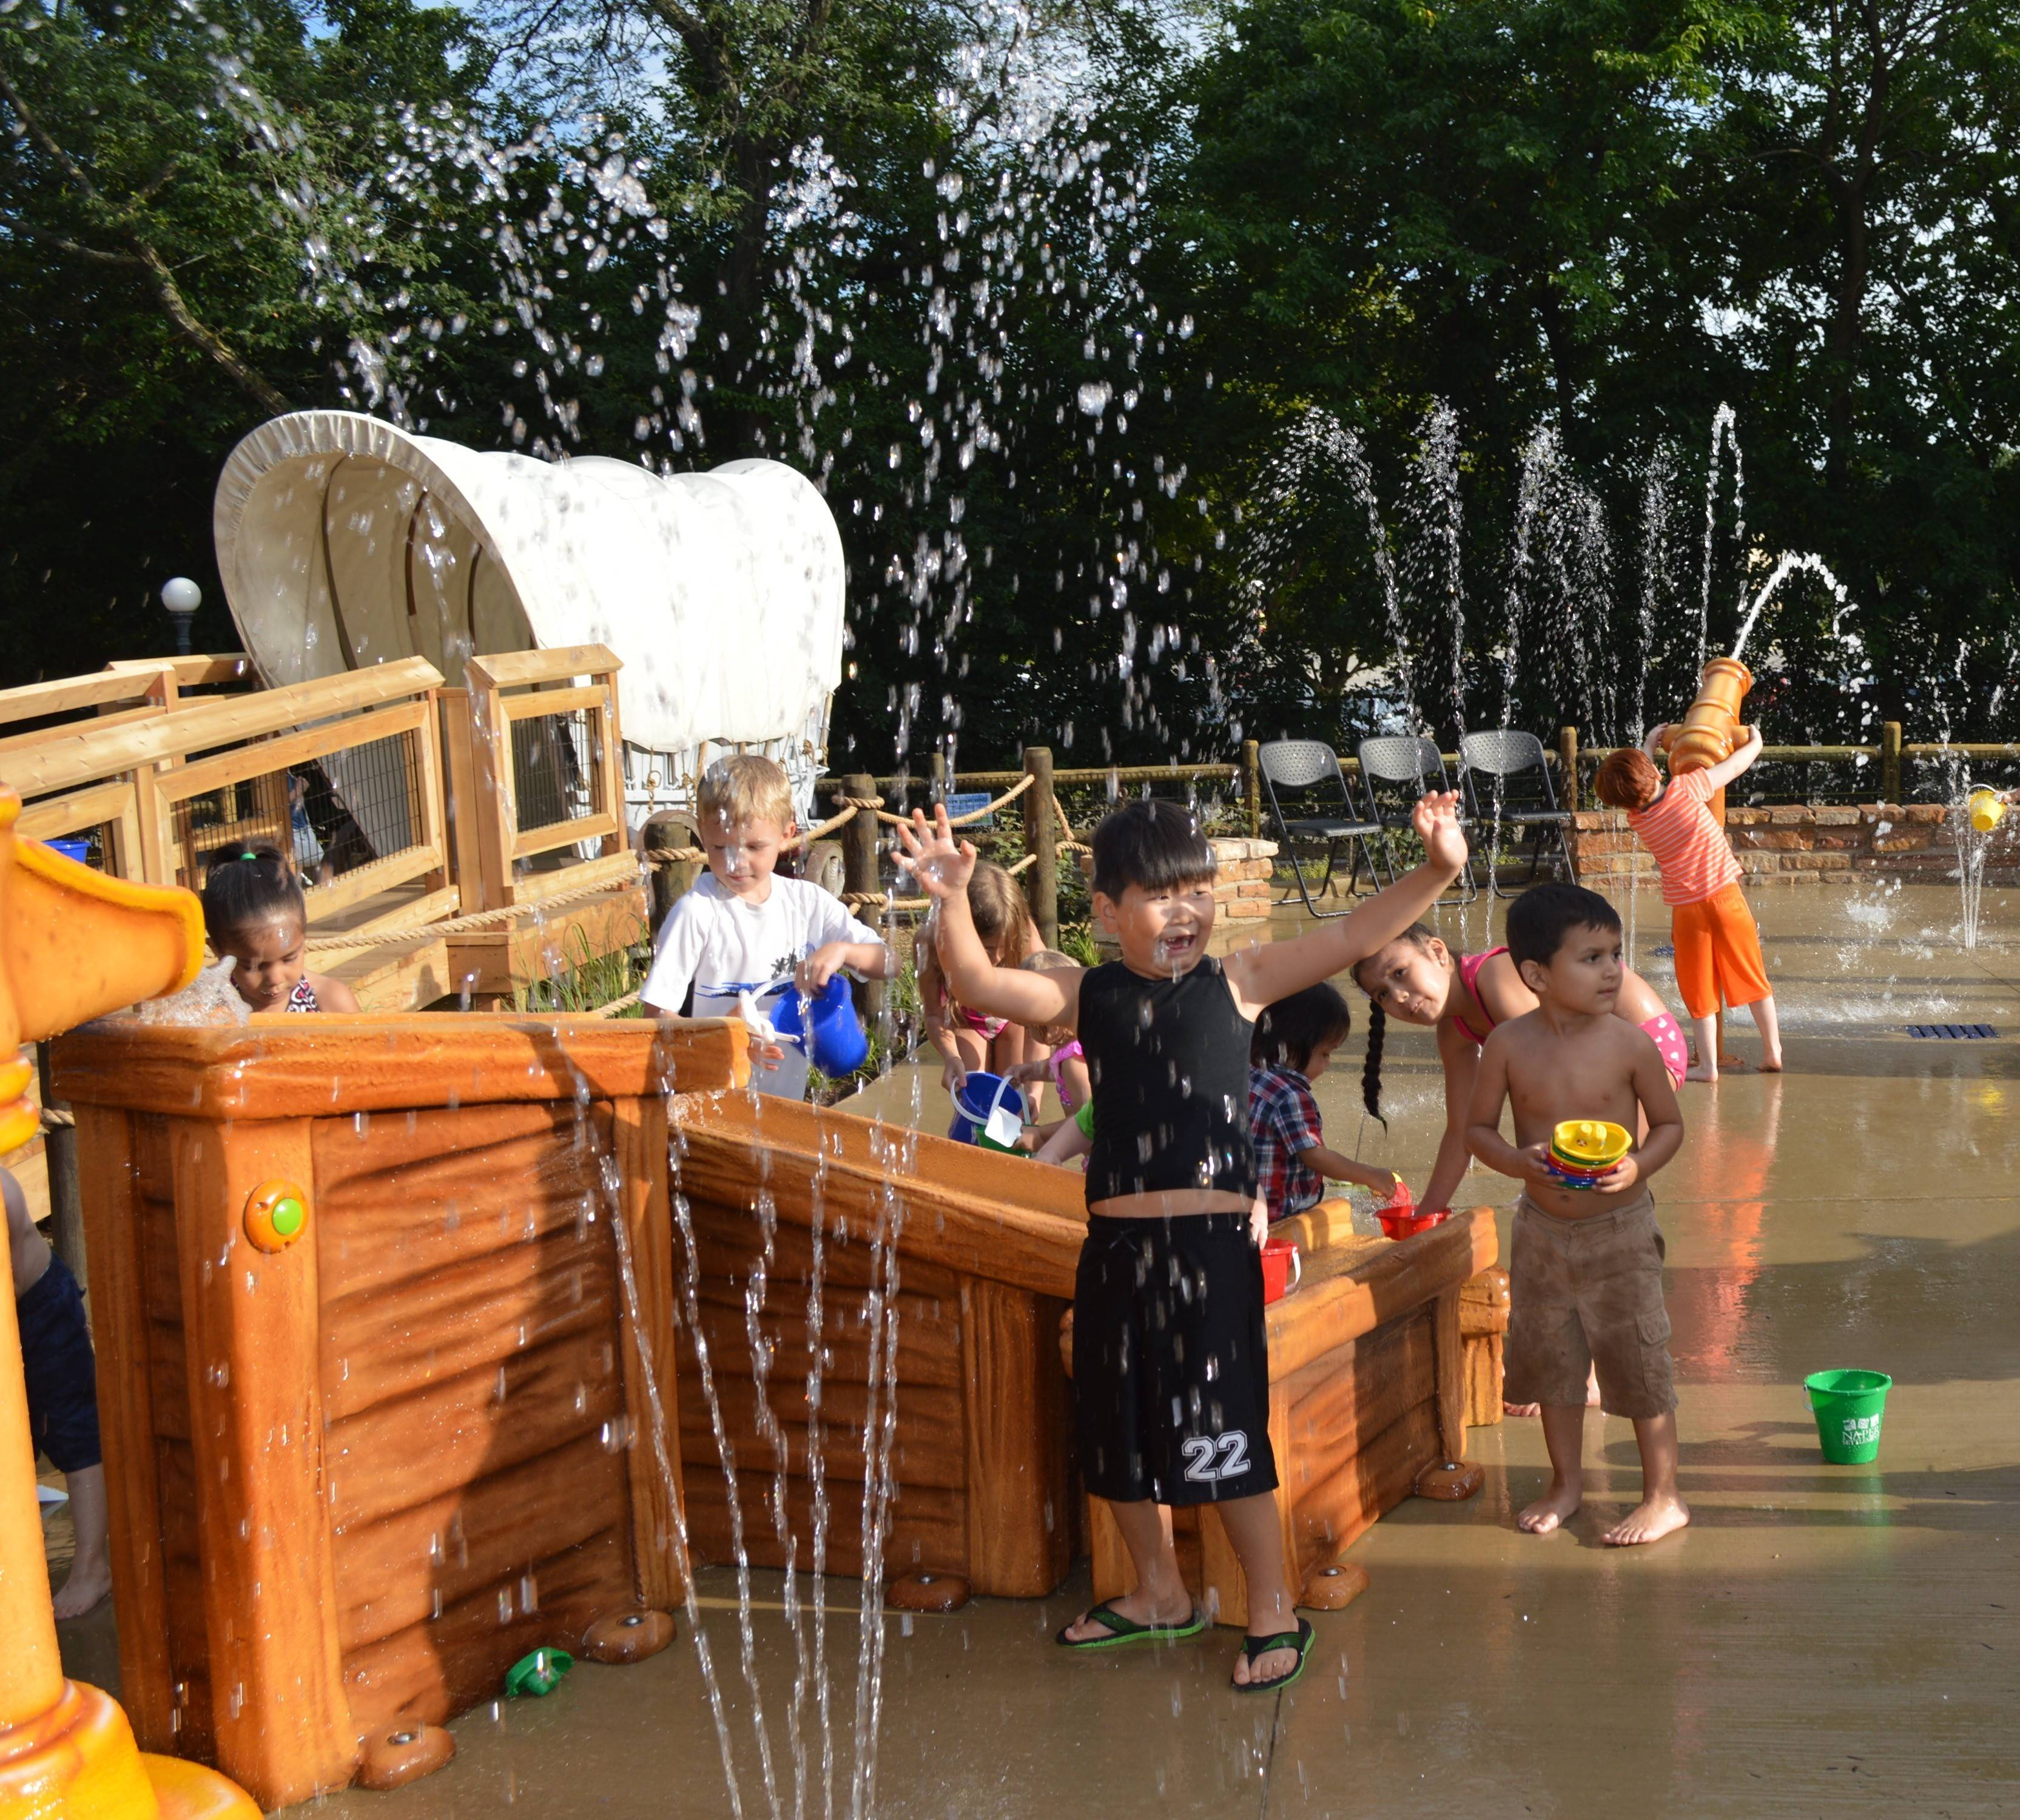 Naper Settlement's Early Learning Playscape includes a water area where visitors can cool off on a warm day.